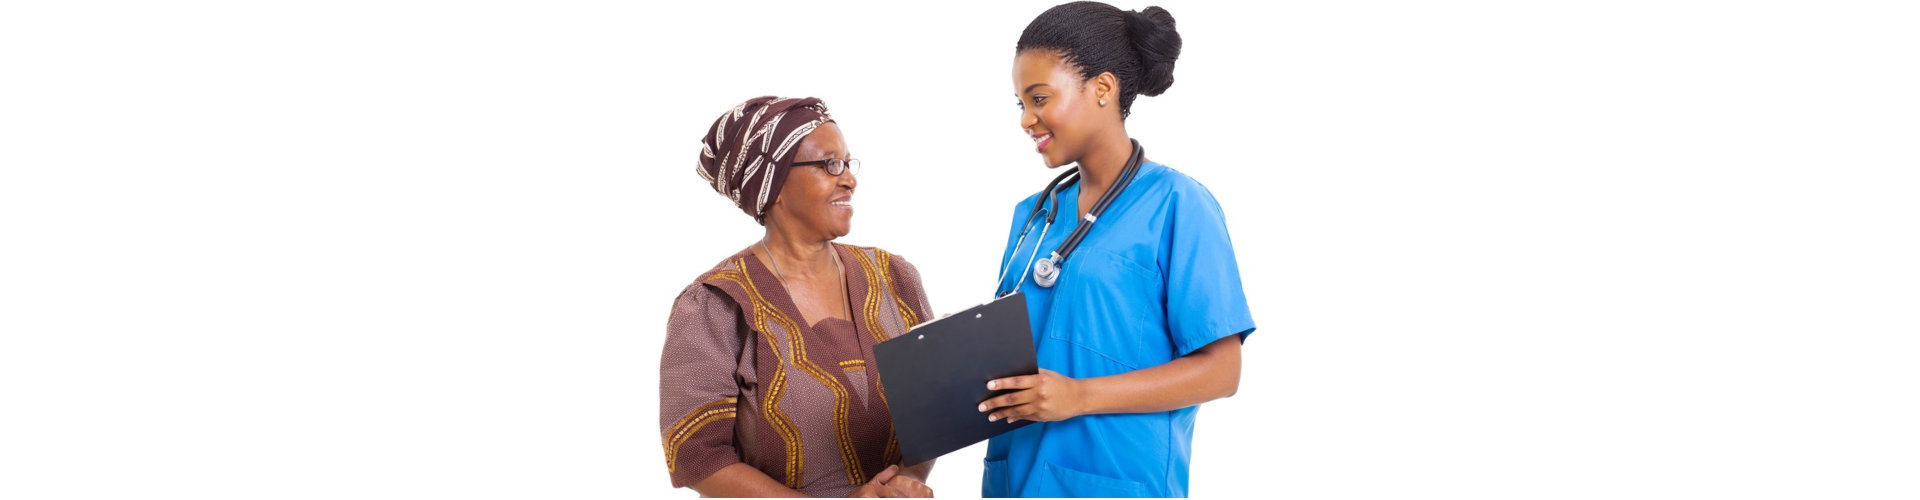 caregiver helping elder woman in choosing the right options concept